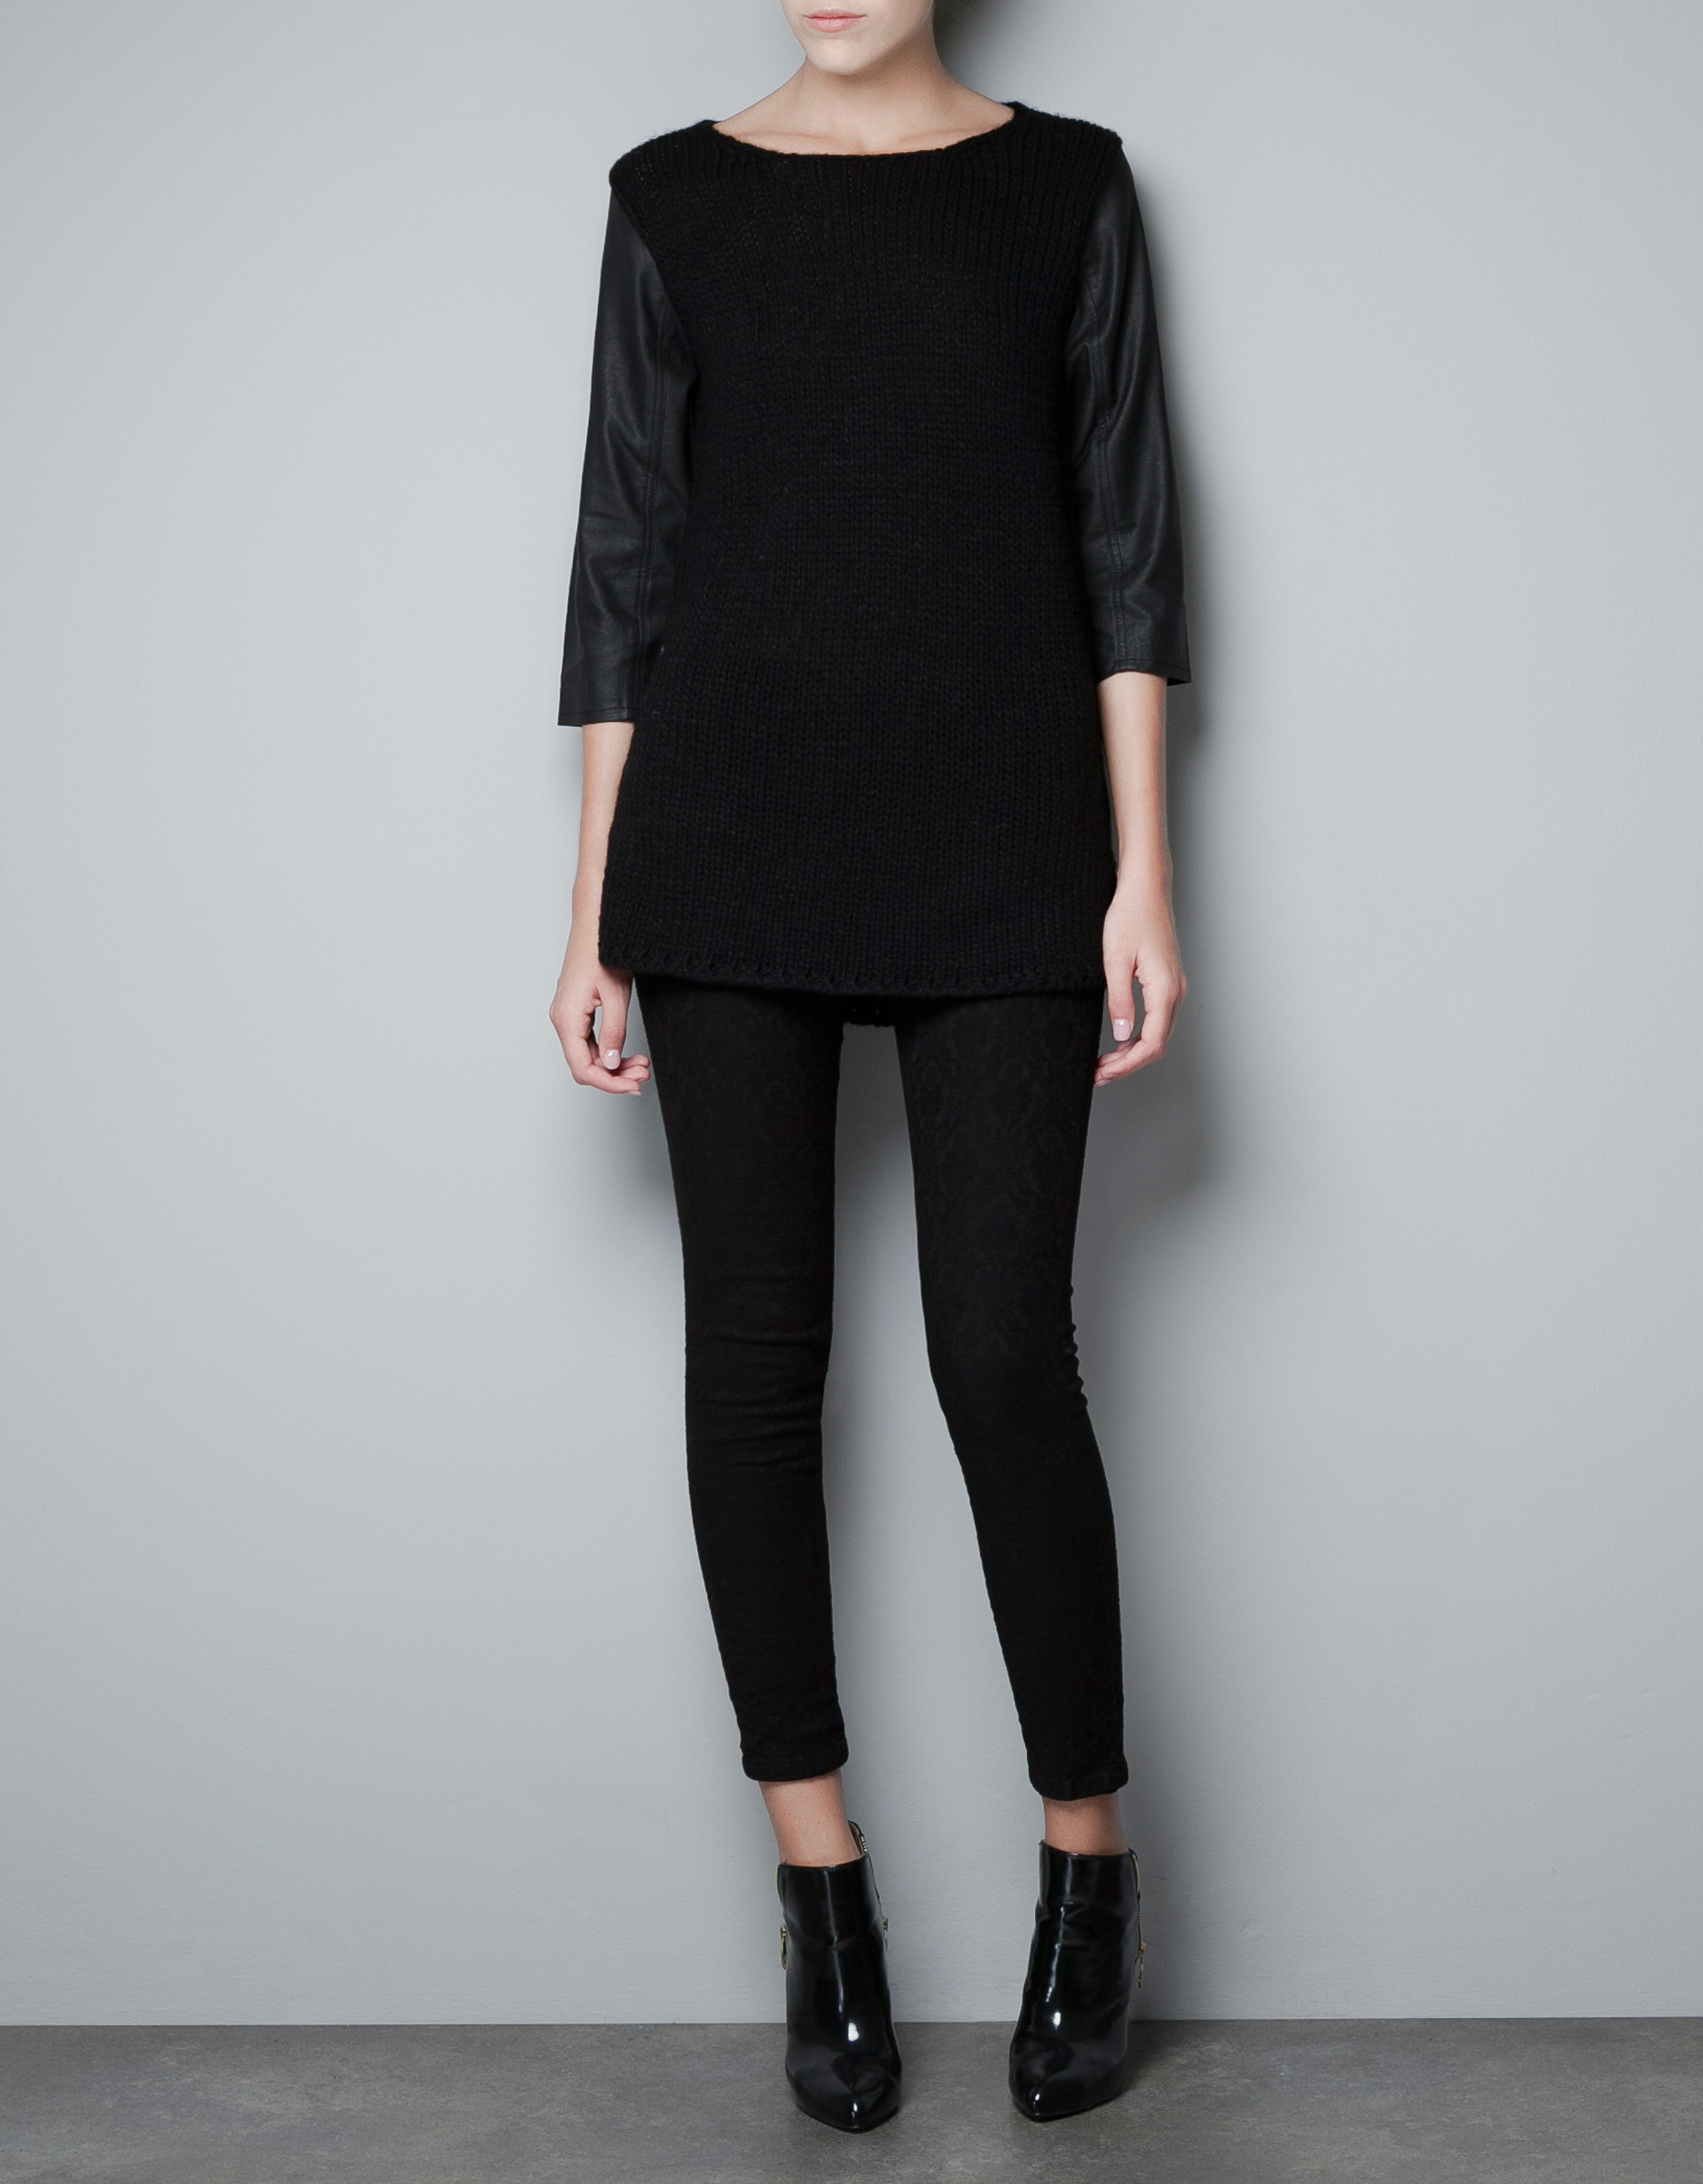 Sweater With Faux Leather Sleeves Zara - Lera Sweater - photo #25